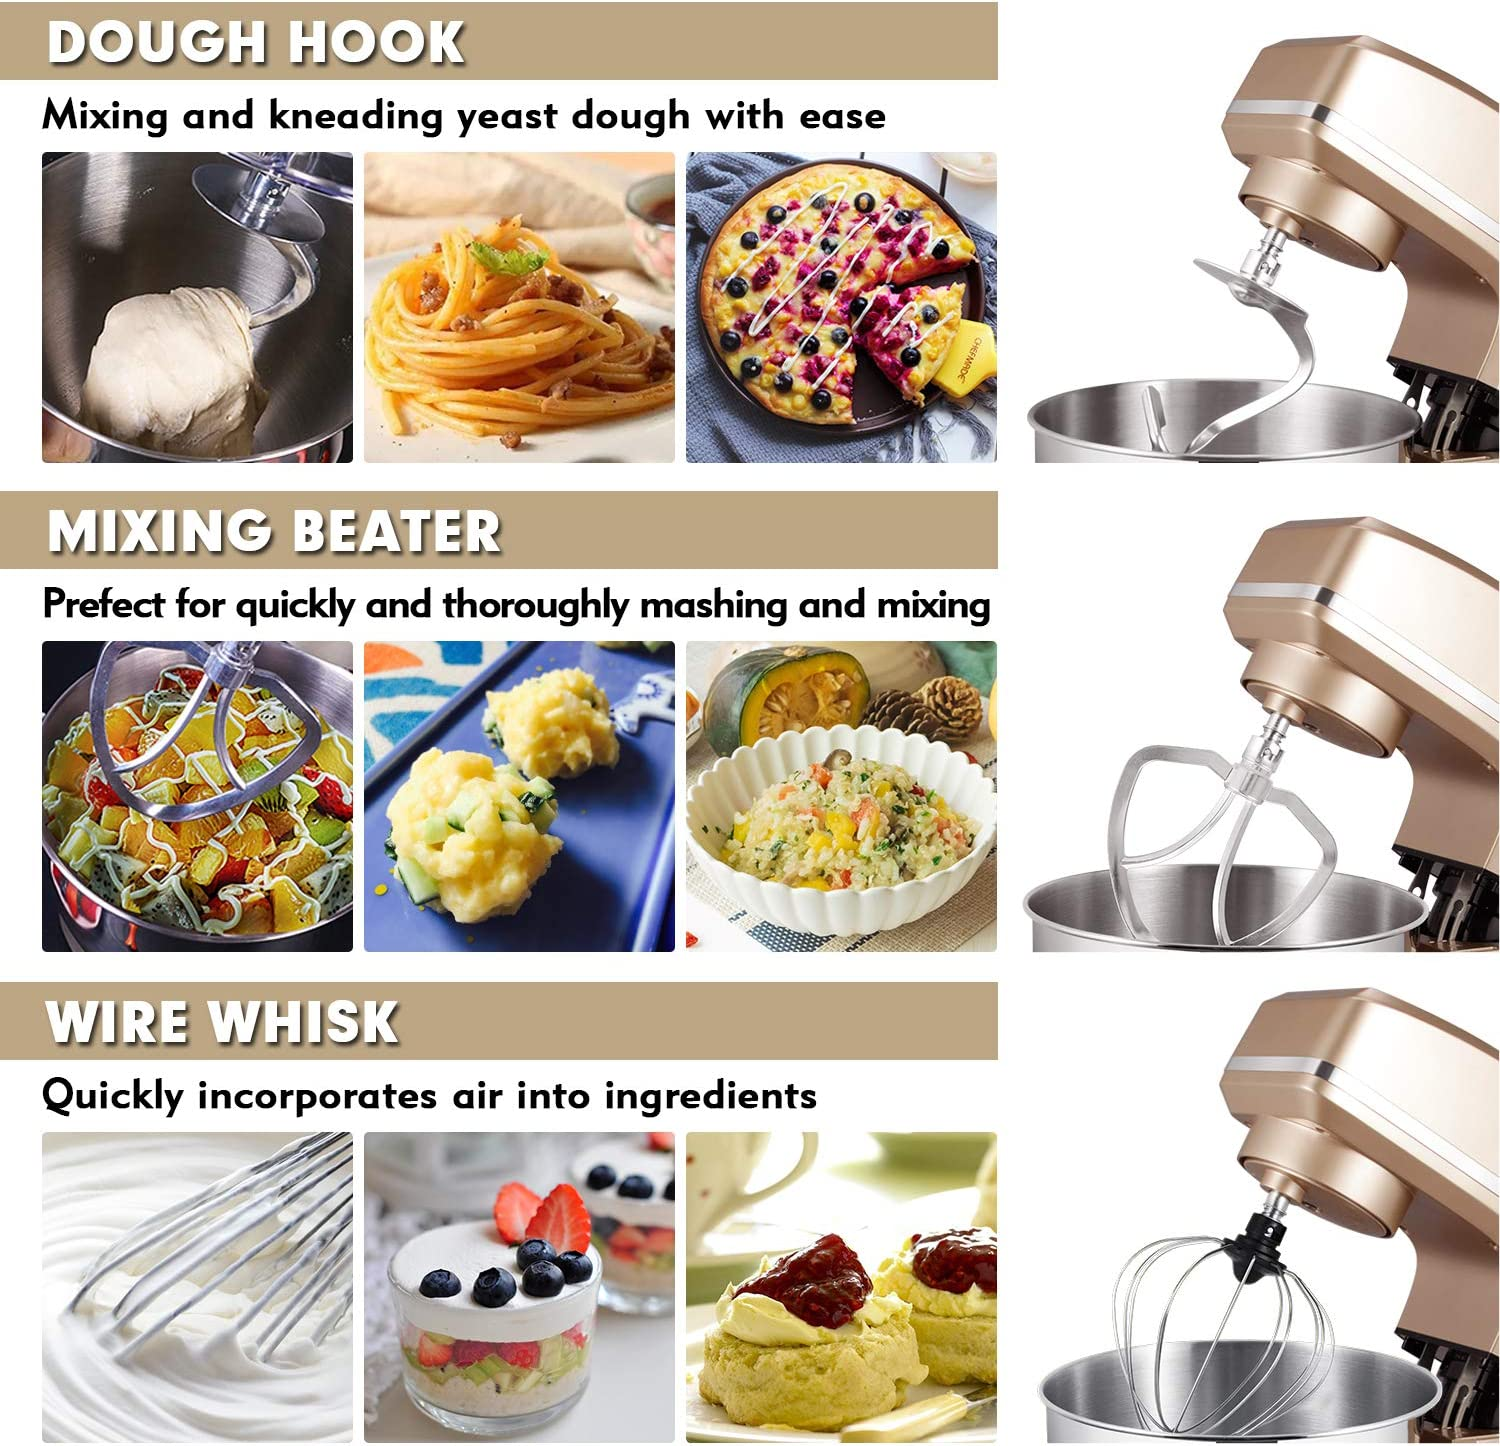 Sincalong 8.5QT 660W 6 Speed Tilt Head Electric Mixer with Stainless Steel Bowl Dough Hook Champagne Splash Guard Whisk Dough Kneading Machine Stand Mixer Flat Beater